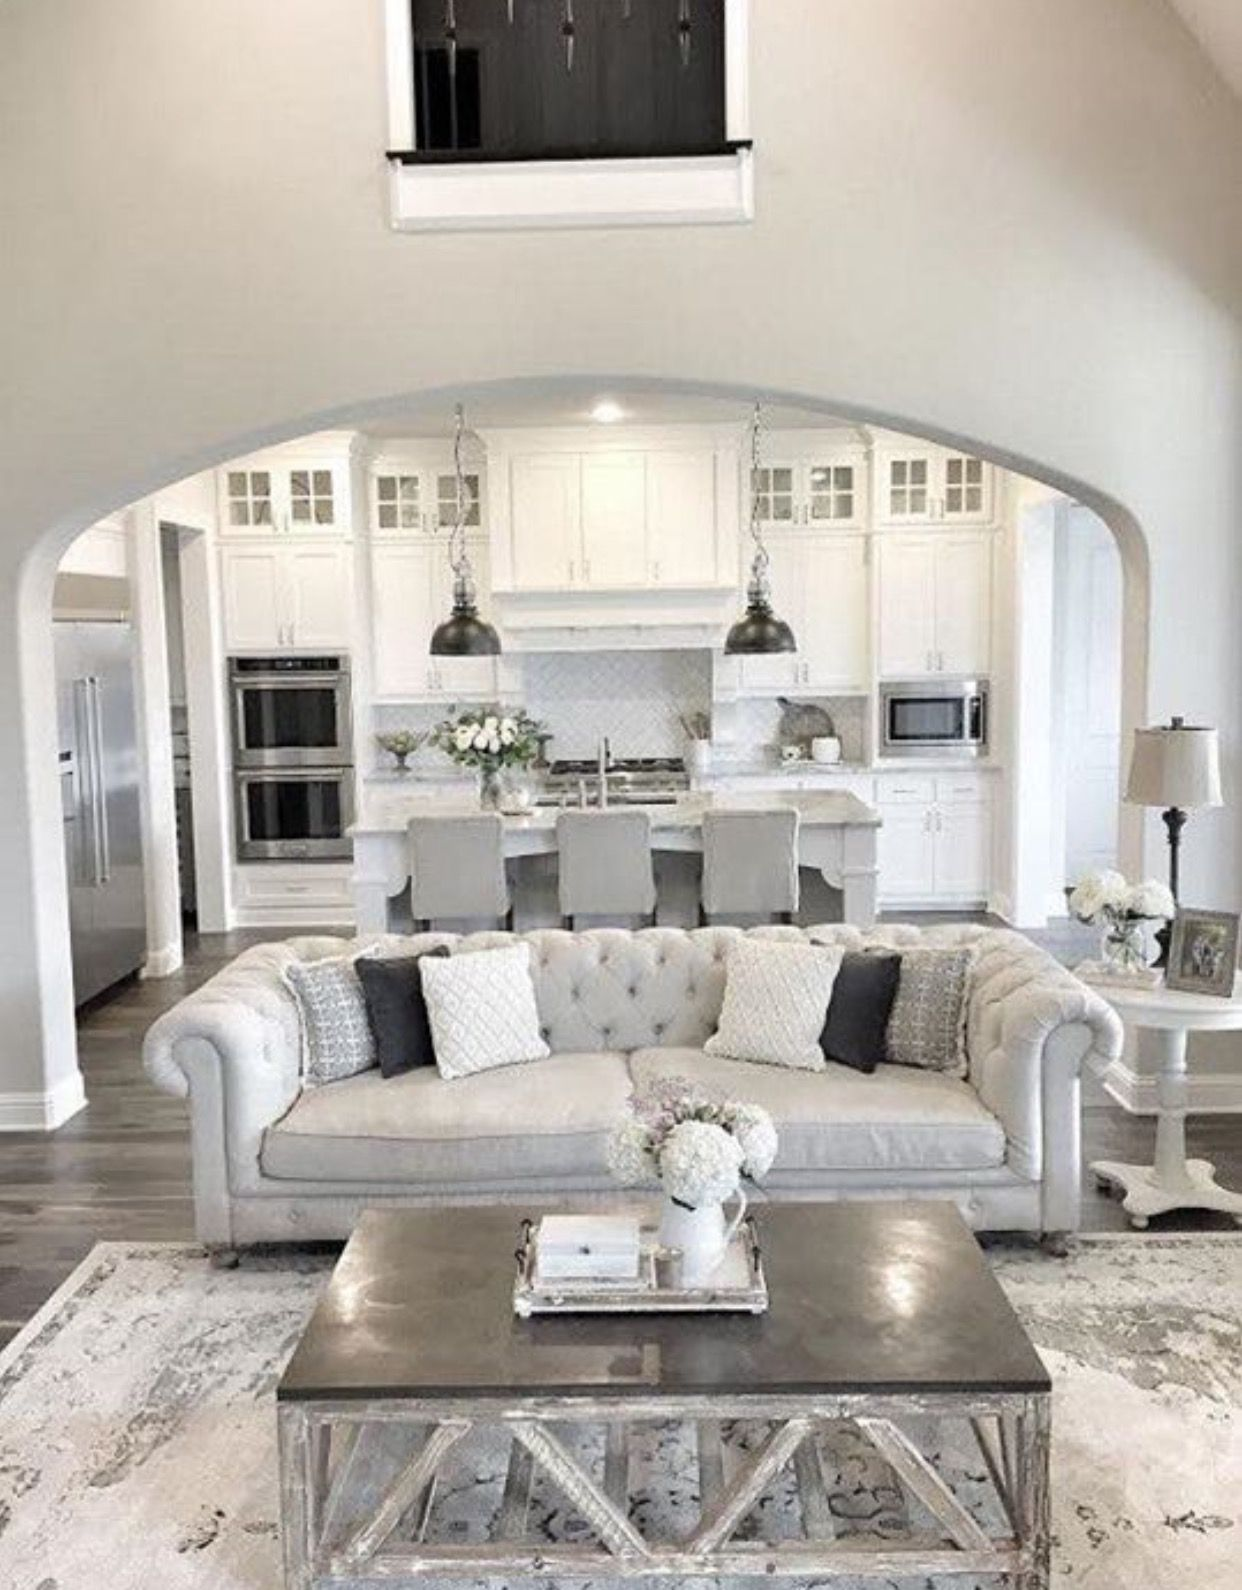 Pin by Becky Becky on My Wish list | Pinterest | Living rooms, House ...